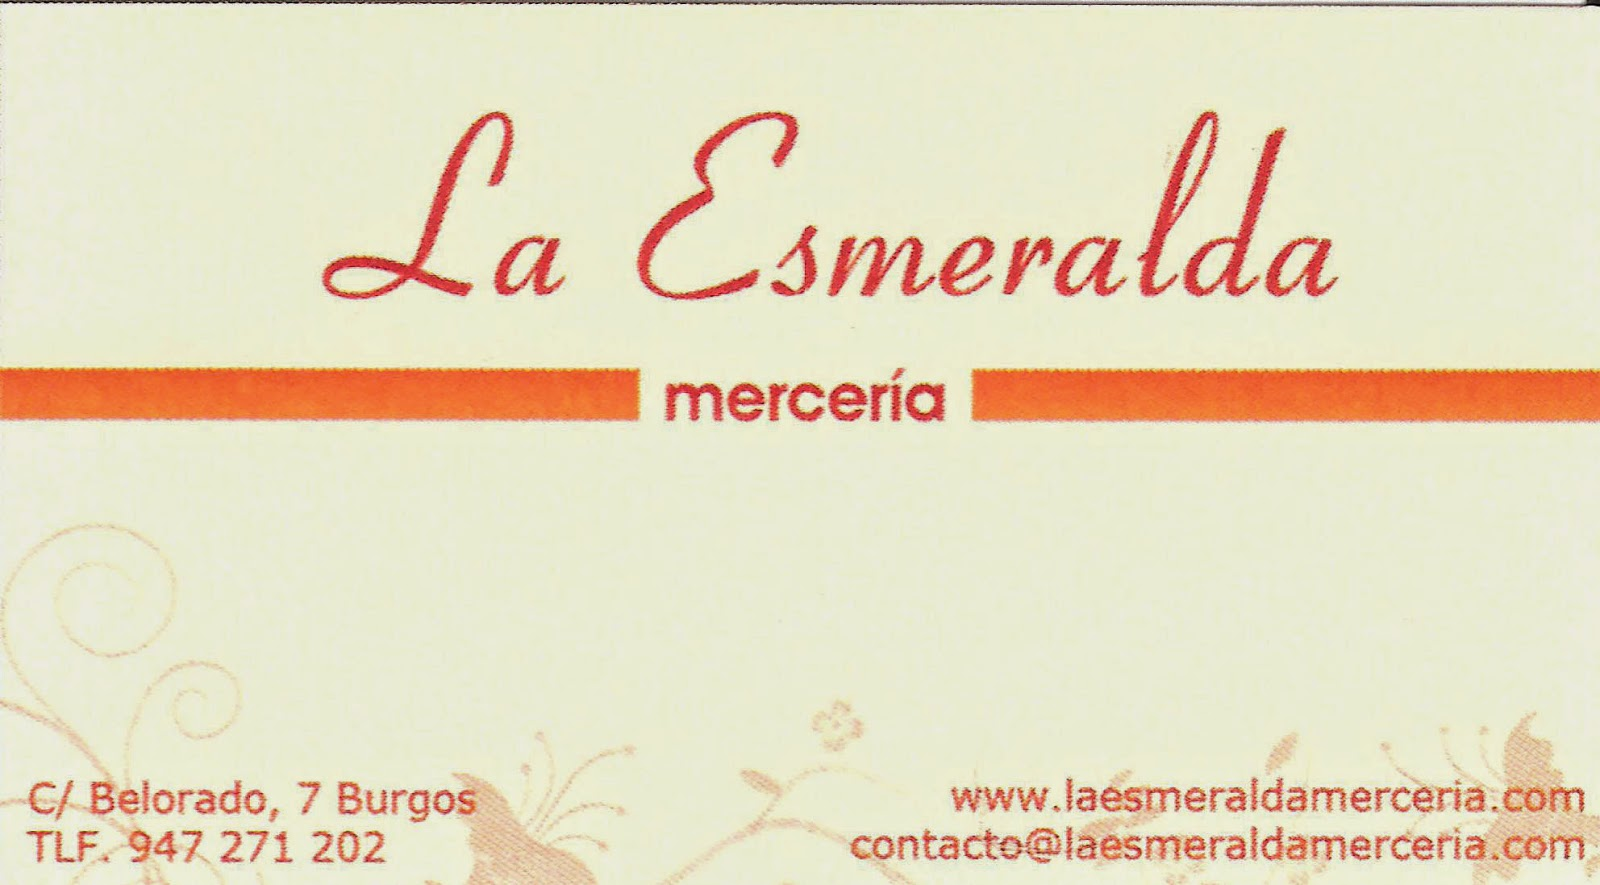 https://www.facebook.com/pages/La-Esmeralda-Merceria/1656830251209934?fref=ts